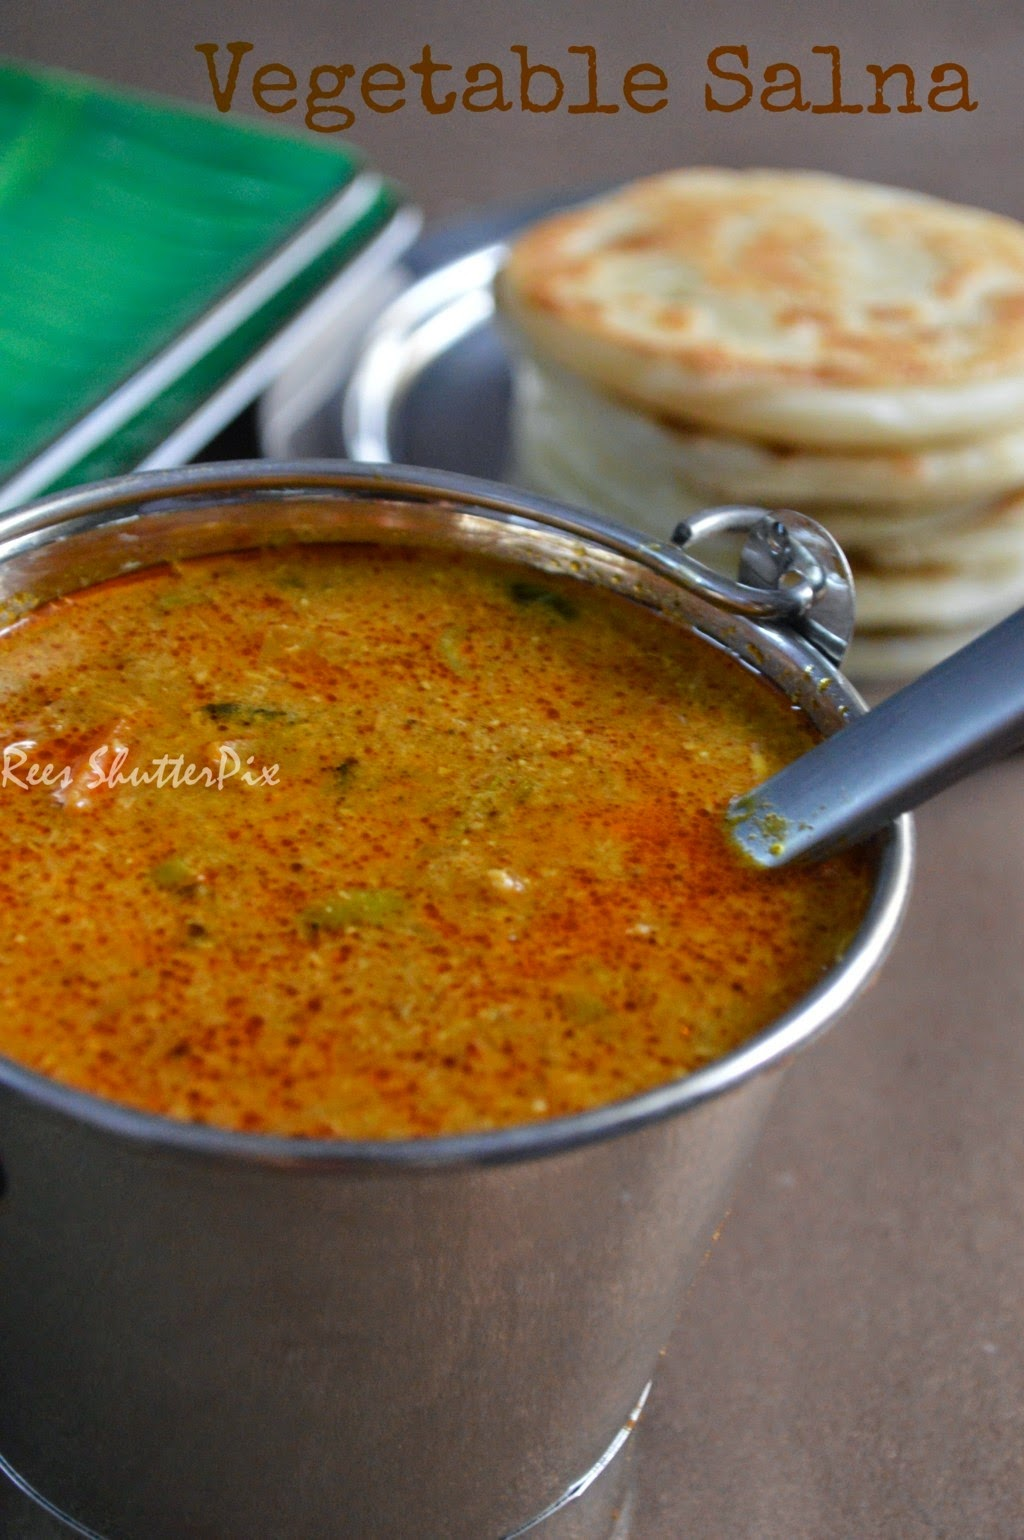 parotta salna, roadside parotta salna recipe, step by step picture recipe, vegetable salna in tamil, salna , saalna recipe, tamilnadu hotel style parotta salna